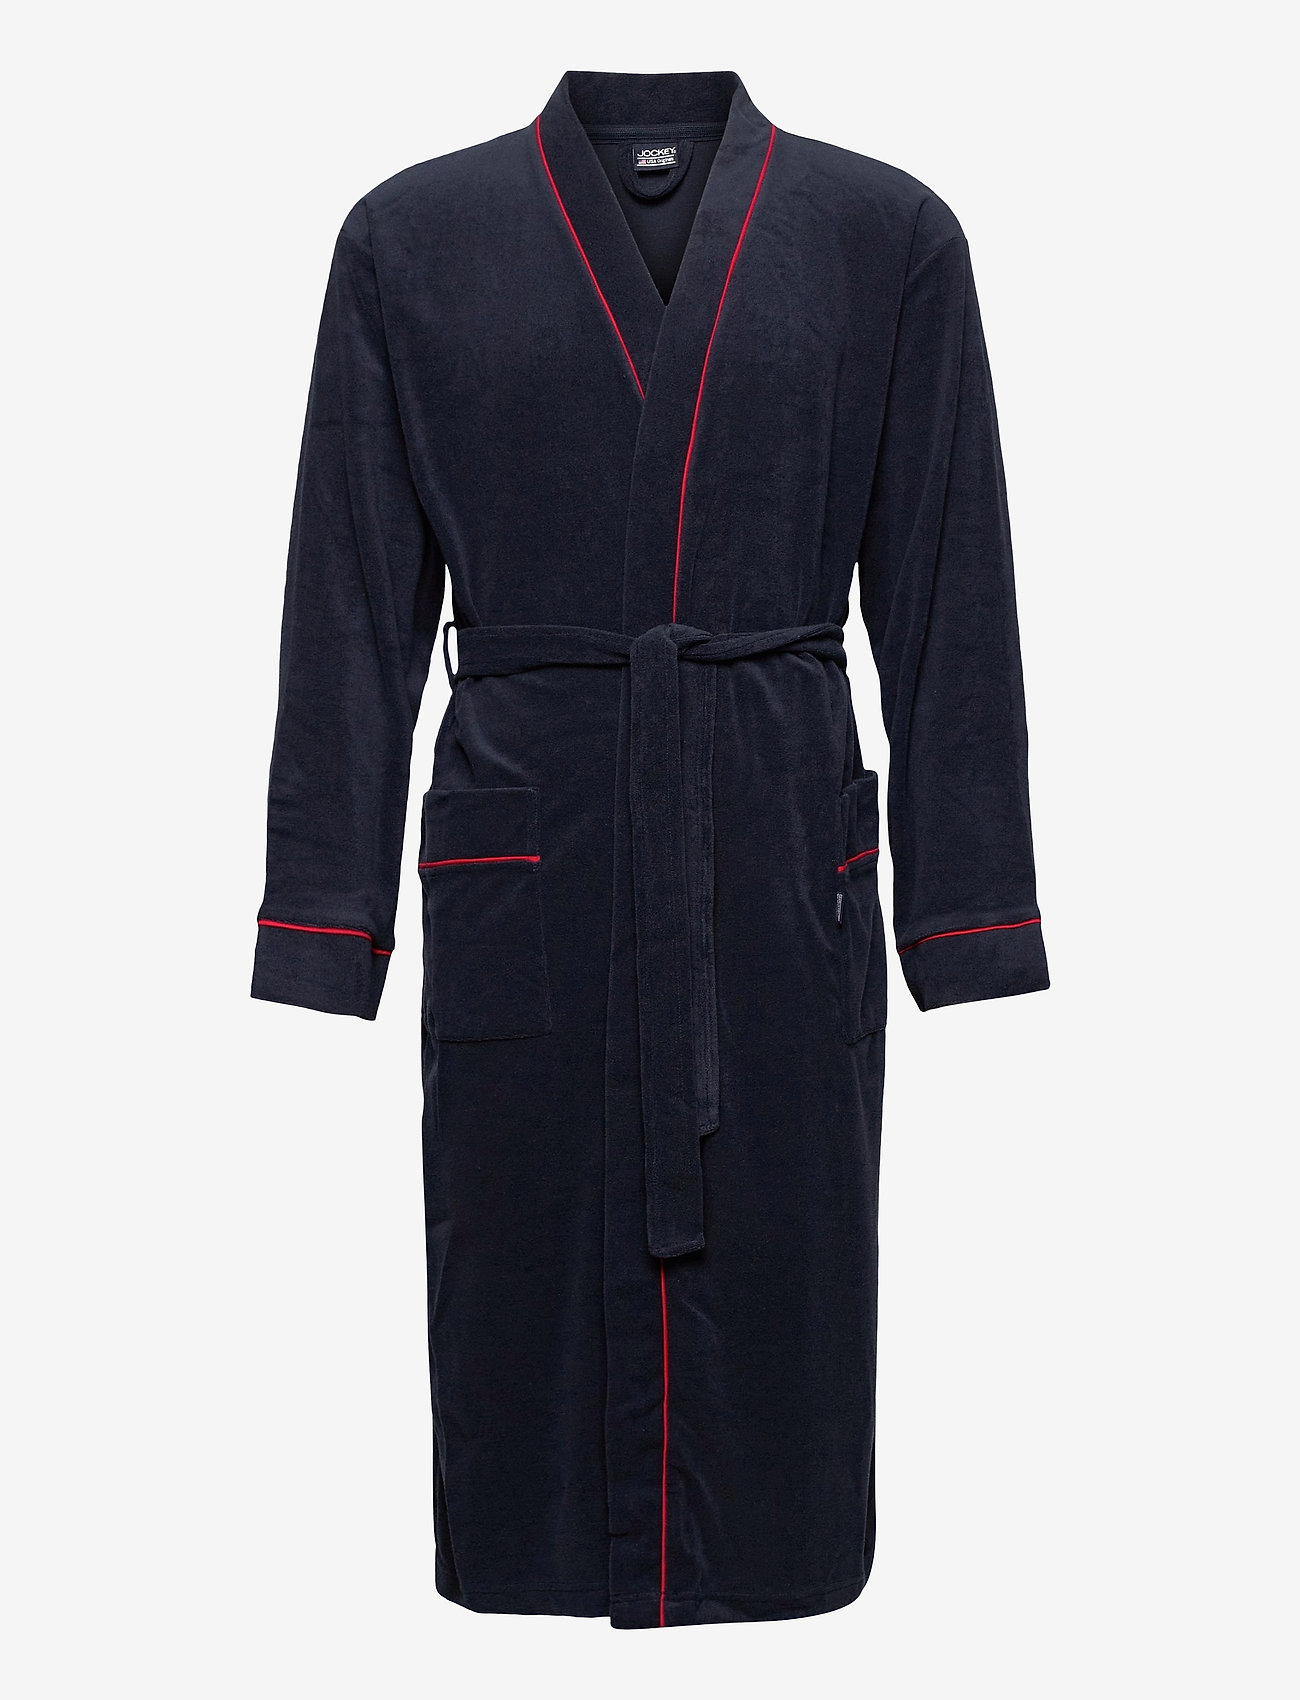 Jockey - Bath robe - peignoirs - navy - 1